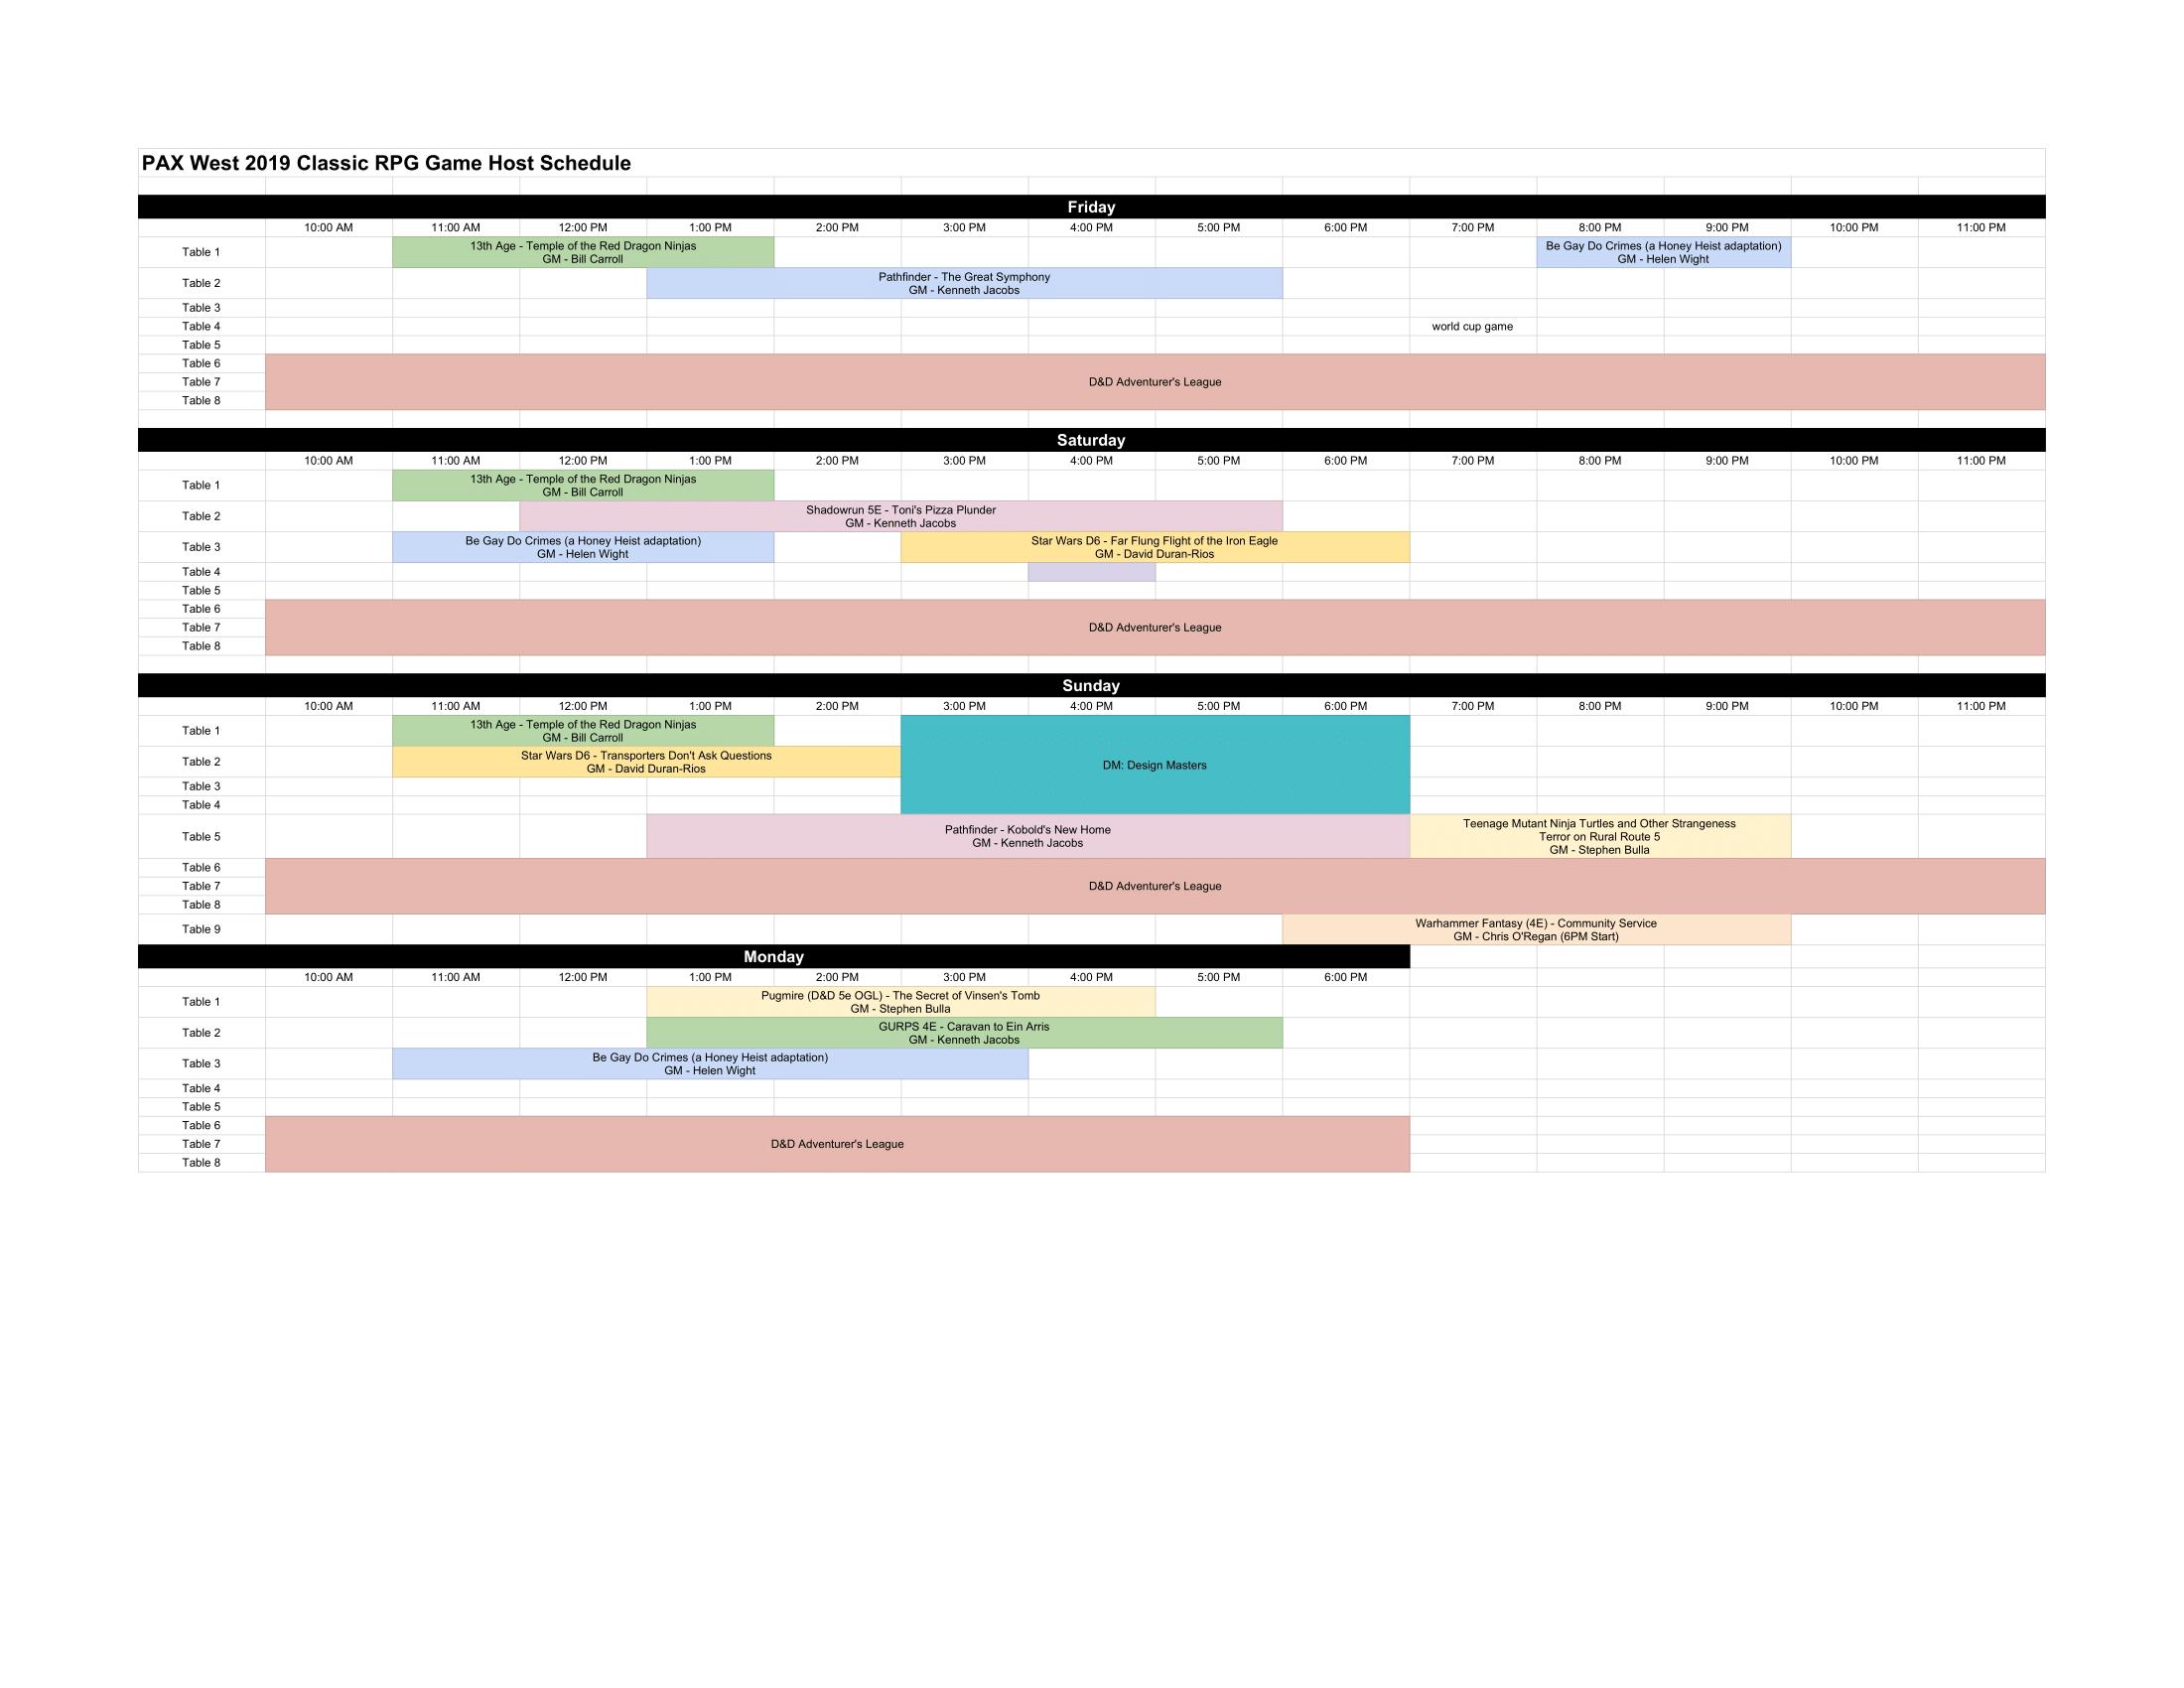 PAX West 2019 Classic RPG Game Host Schedule - Game Hosts-1.png